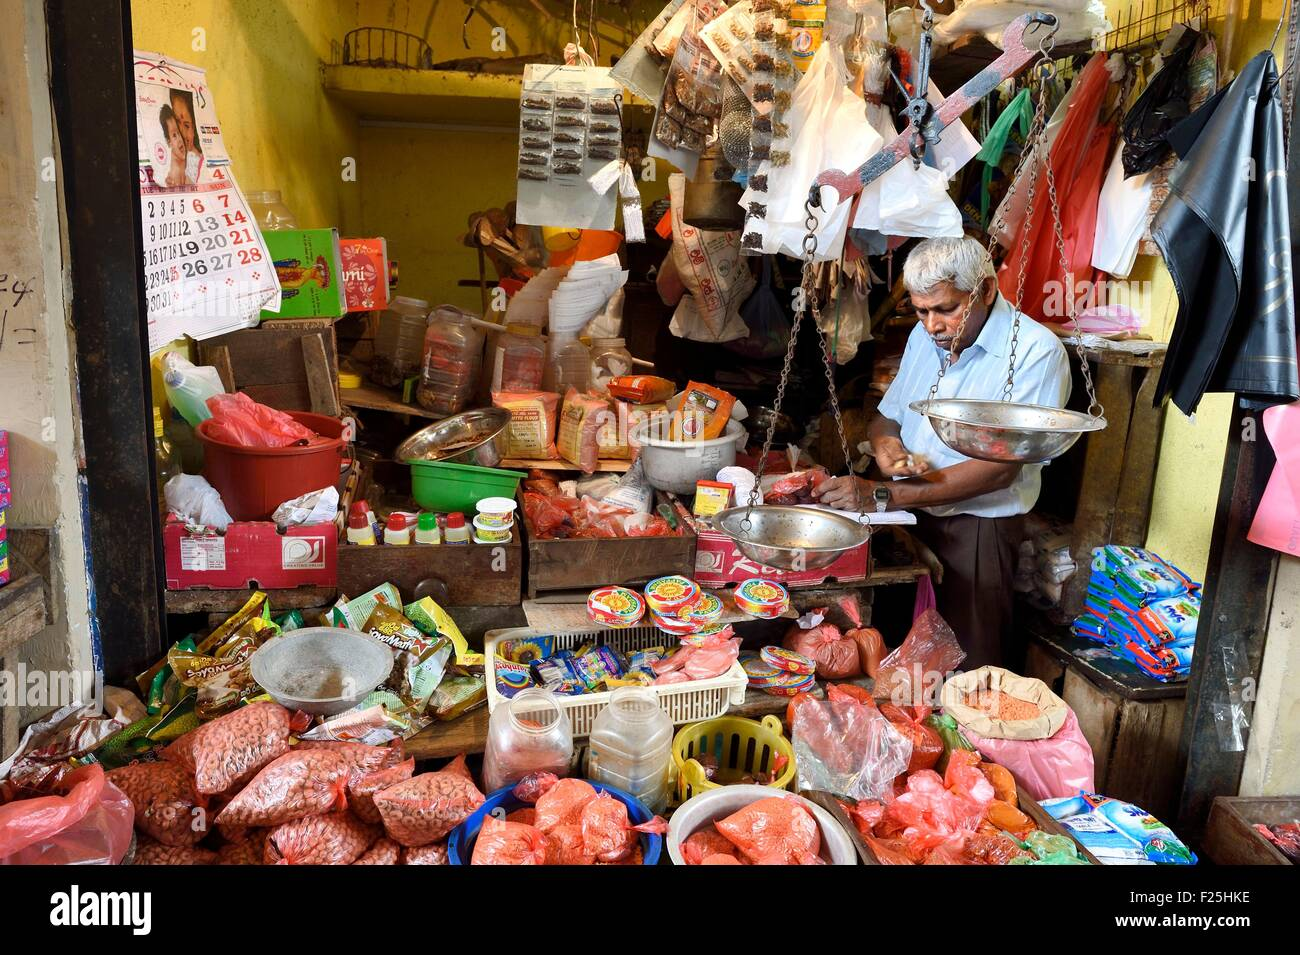 Sri Lanka, Eastern Province, Trincomalee, the covered market, sale of spices - Stock Image